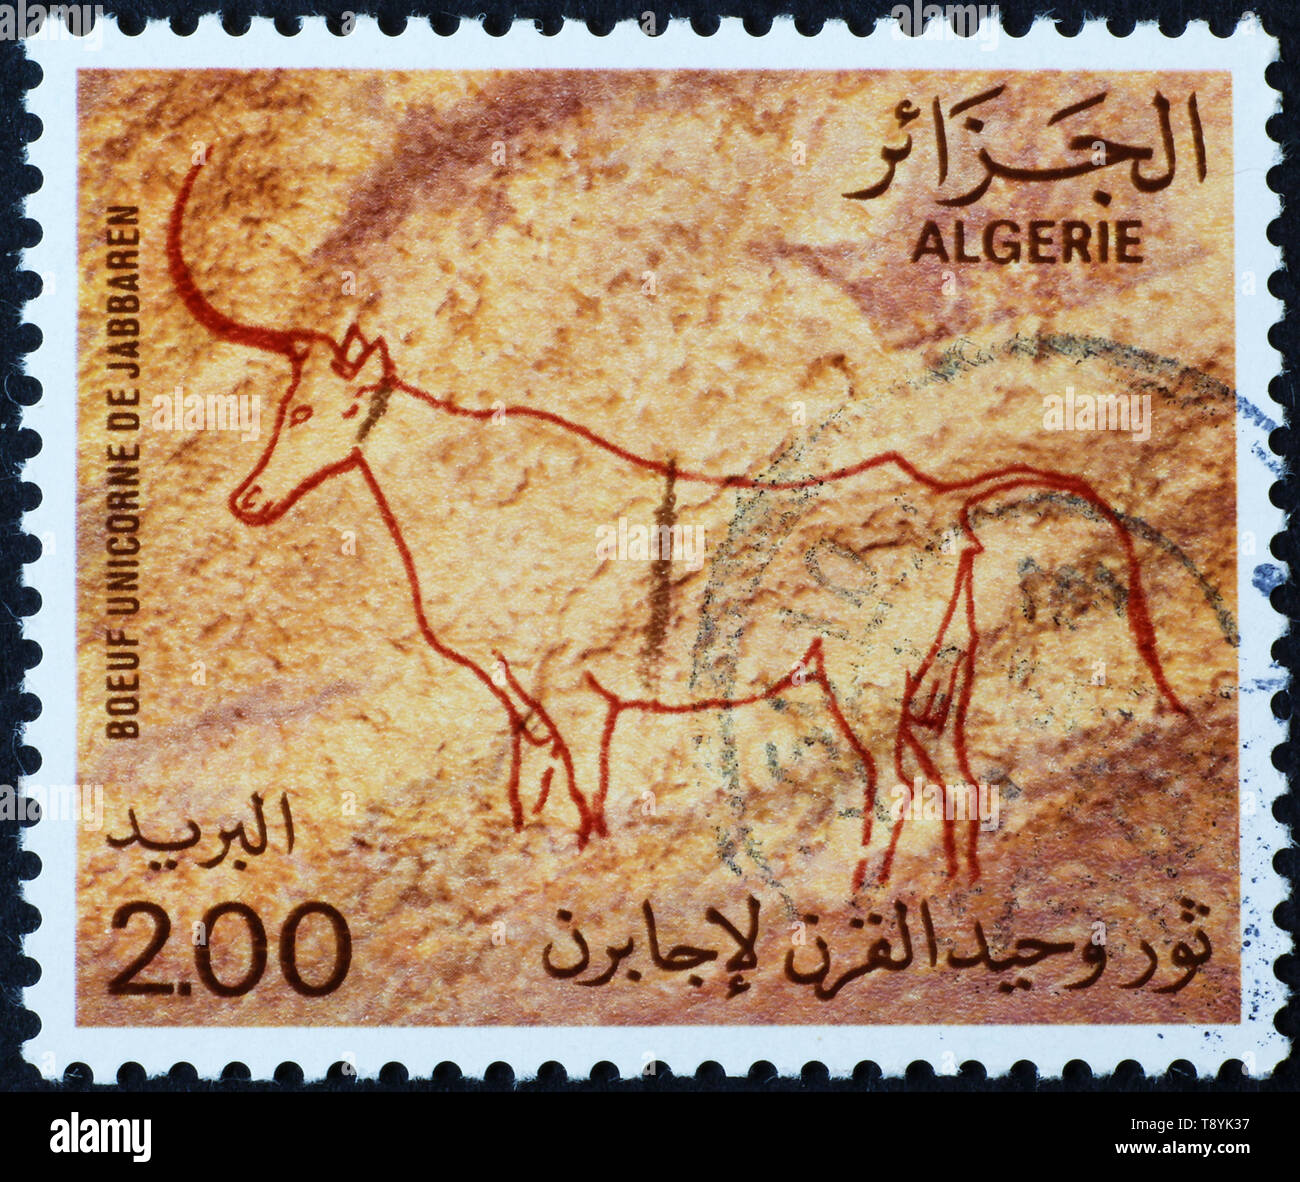 Prehistoric depictions of antelope on algerian postage stamp - Stock Image